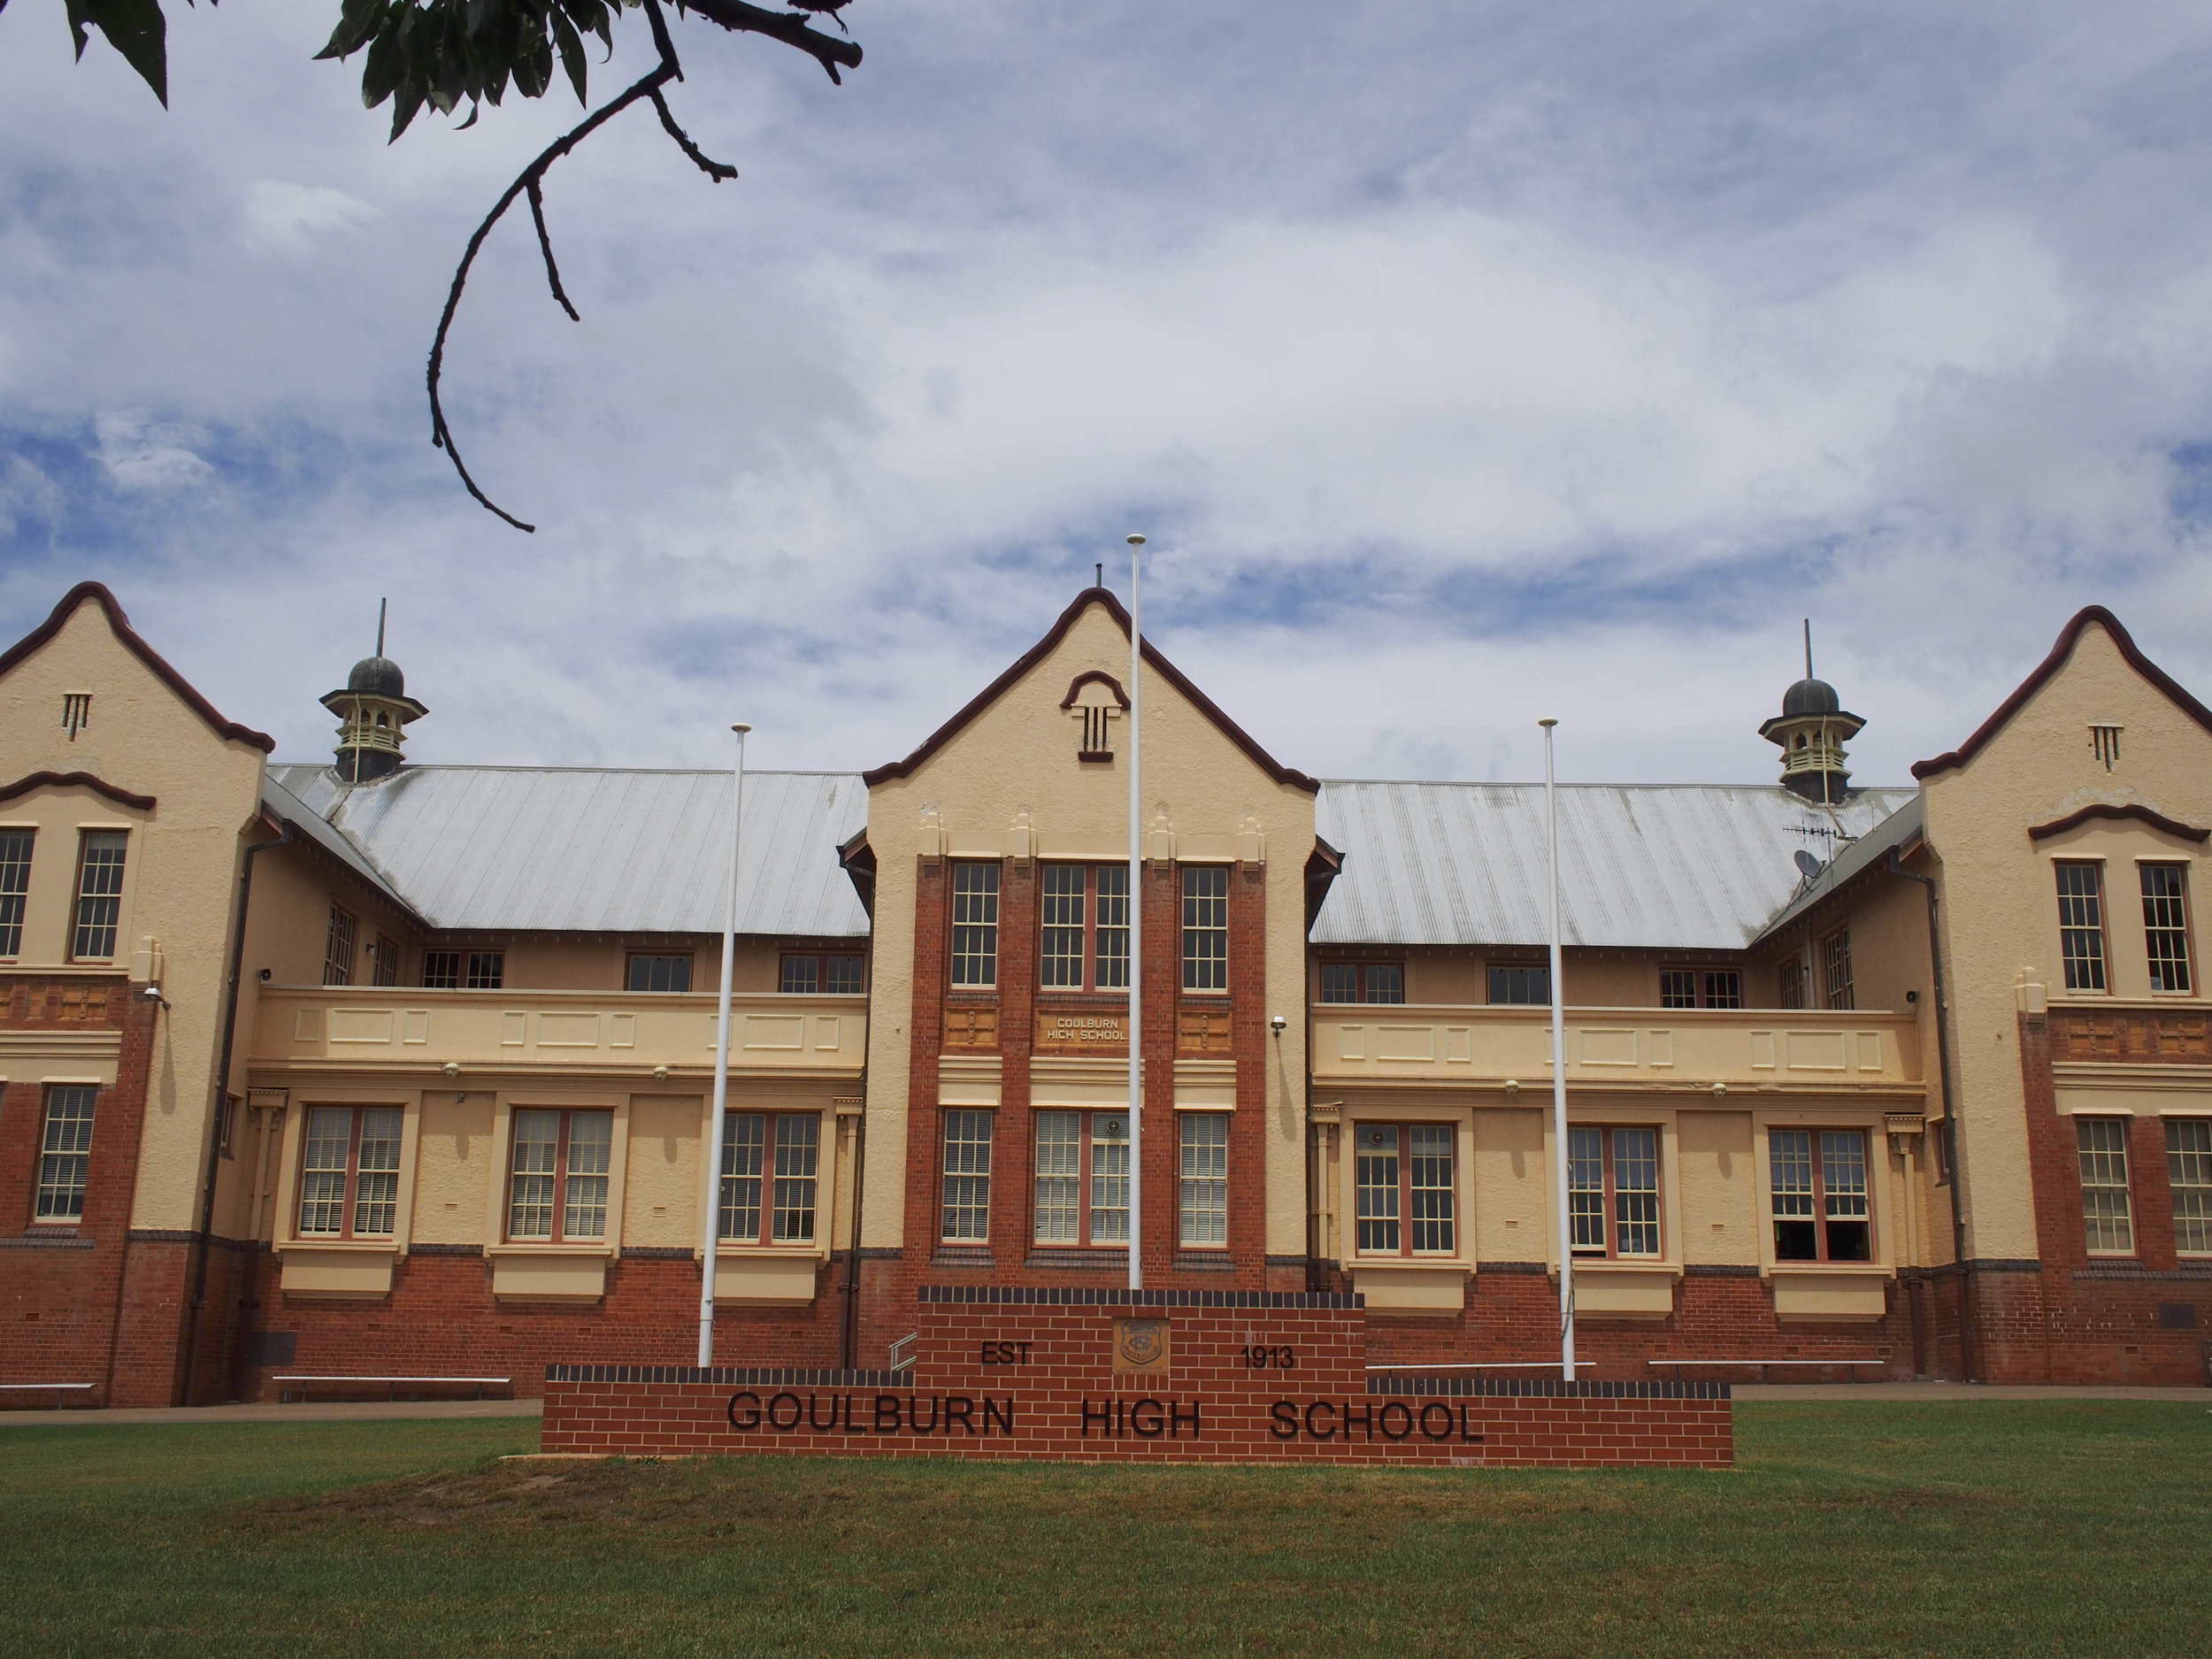 The old stomping ground. Had a lovely walk through memory lane in my old High School. Gorgeous!